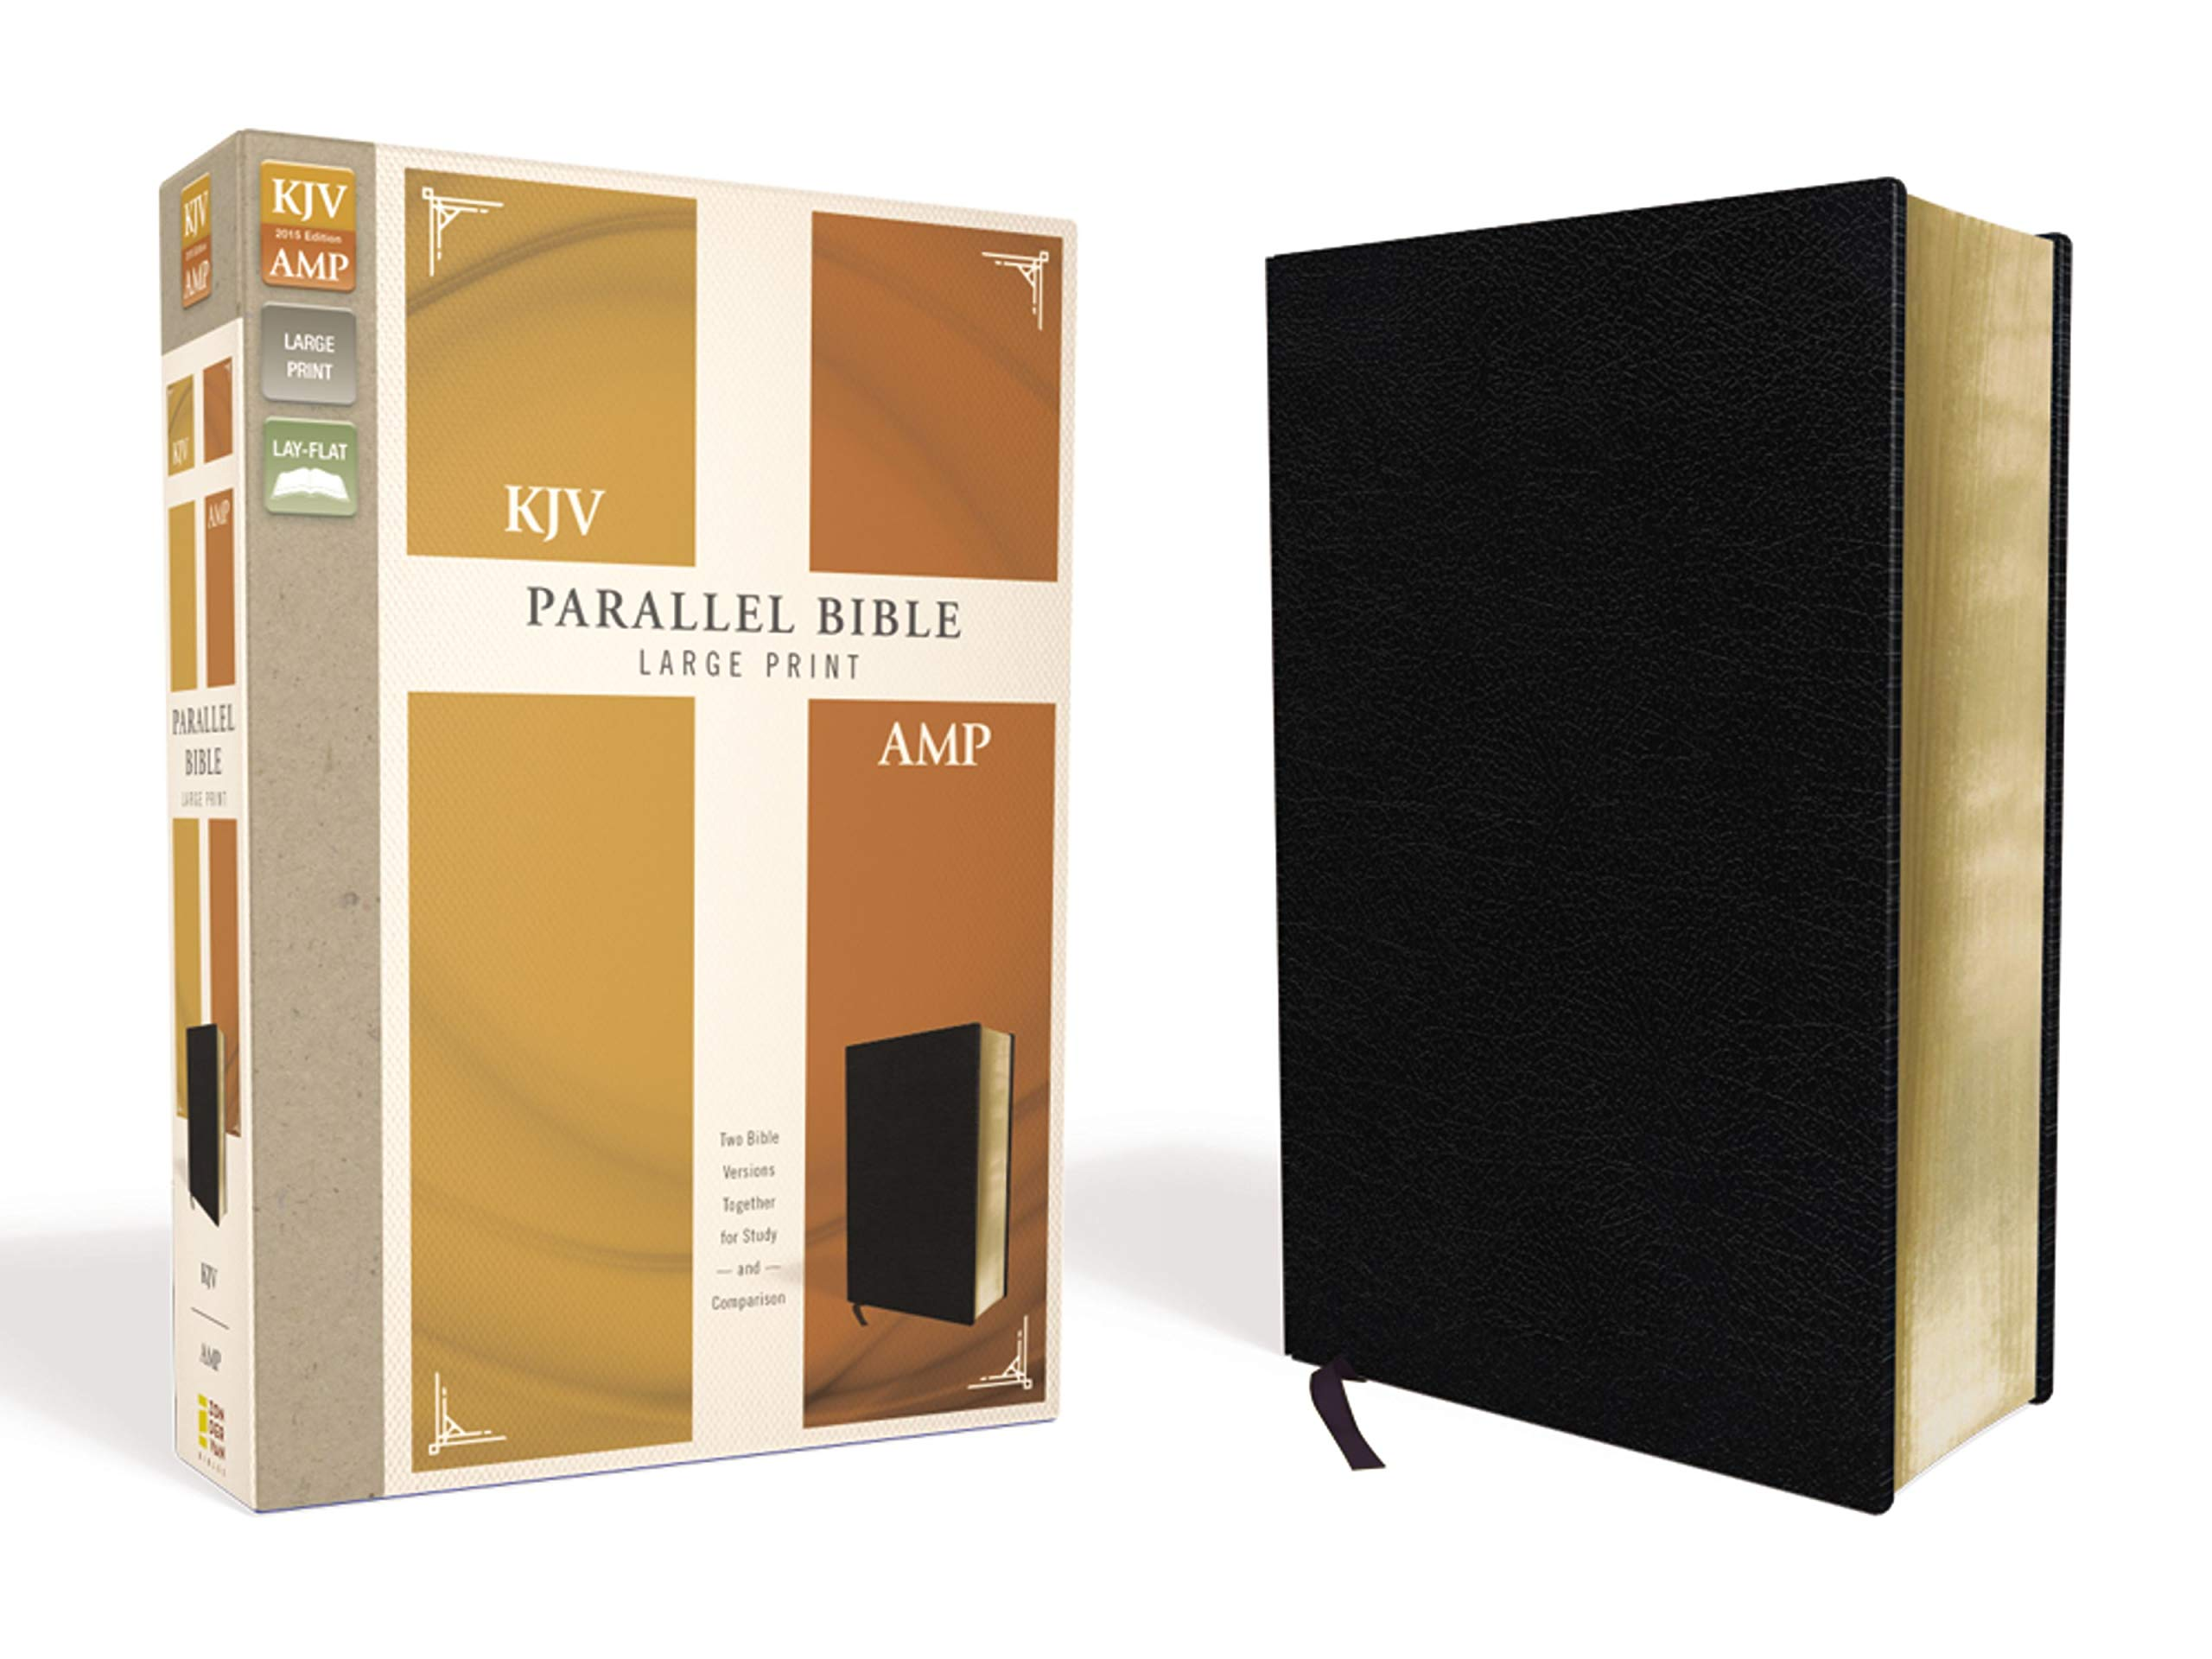 KJV, Amplified, Parallel Bible, Large Print, Bonded Leather, Black, Red Letter Edition: Two Bible Versions Together for Study and Comparison pdf